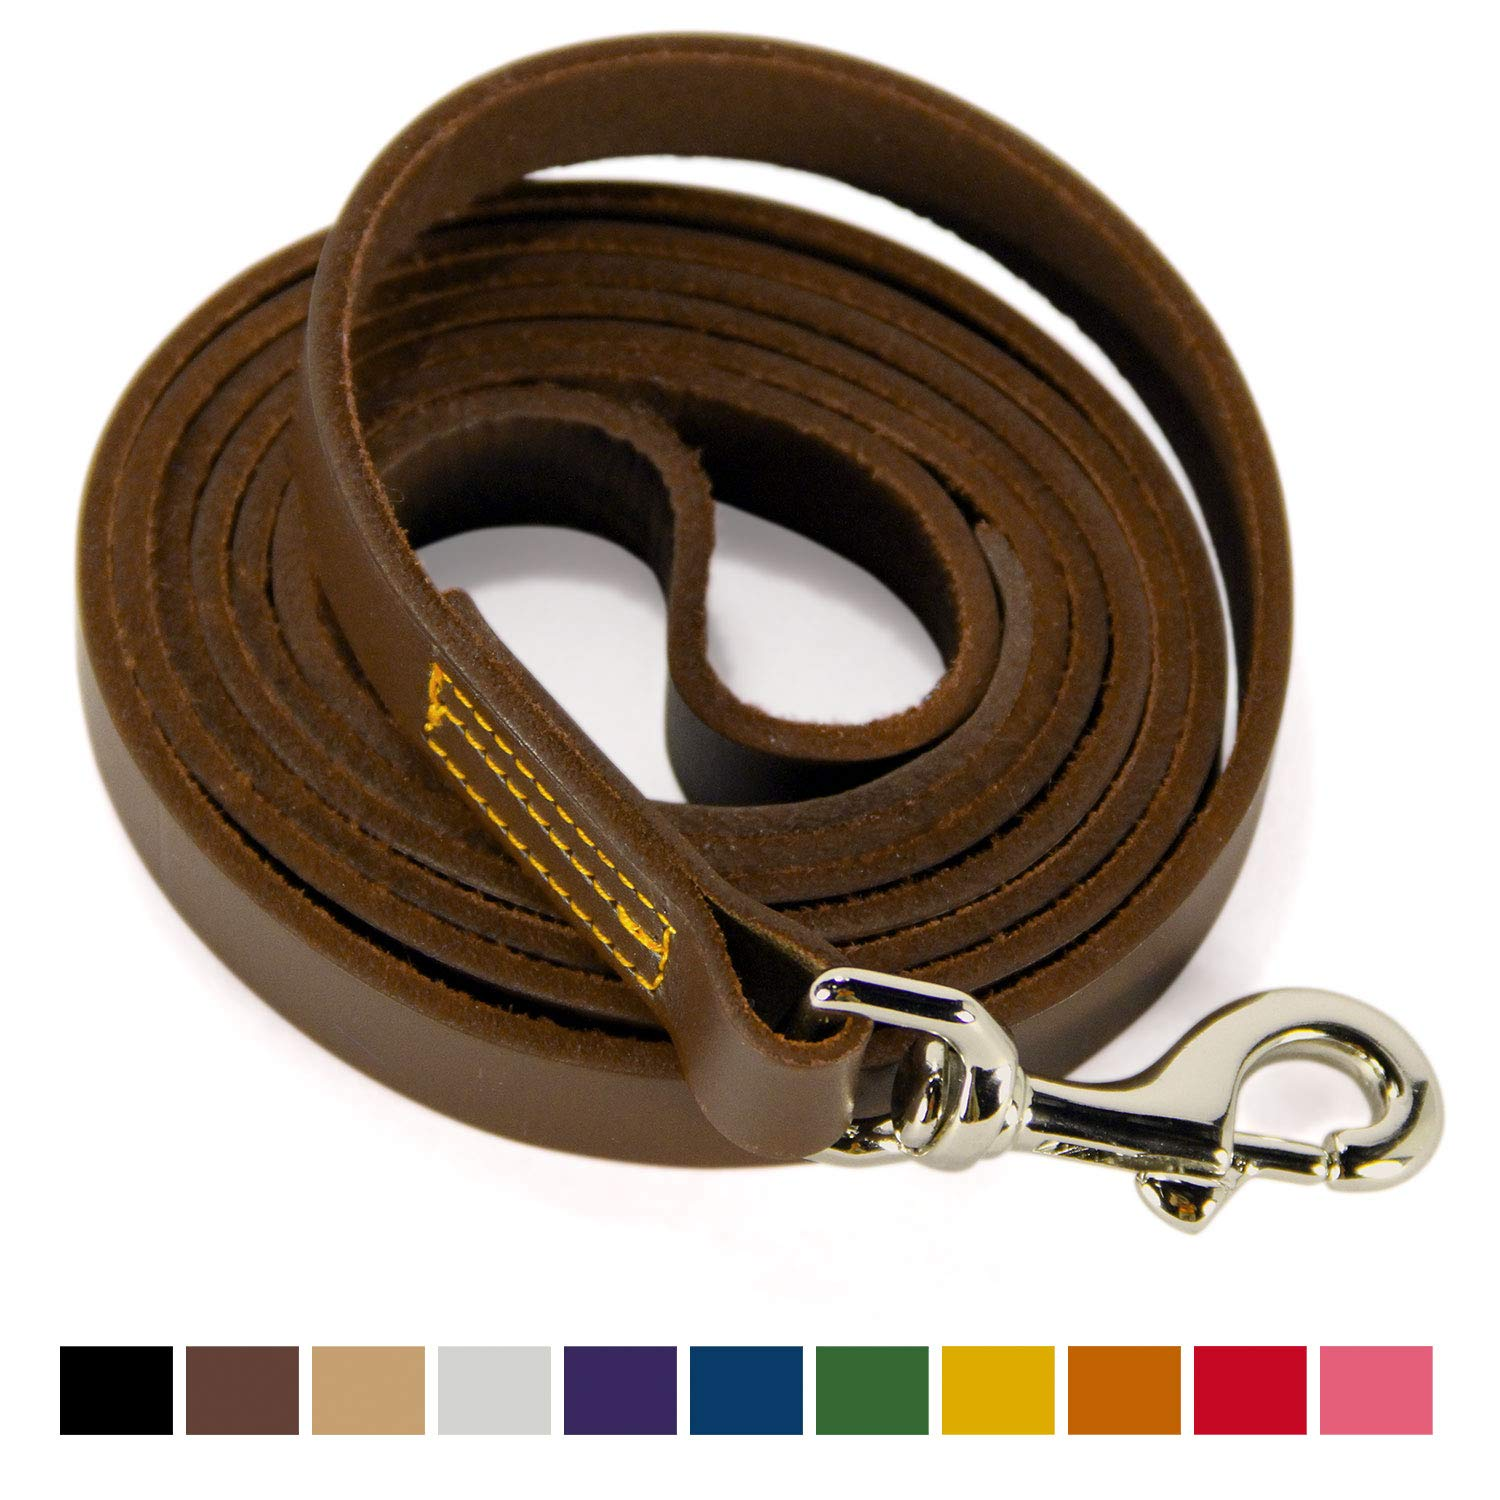 Logical Leather 6 Foot Dog Leash - Best for Training - Best Water Resistant Heavy Full Grain Leather Lead - Brown by Logical Leather